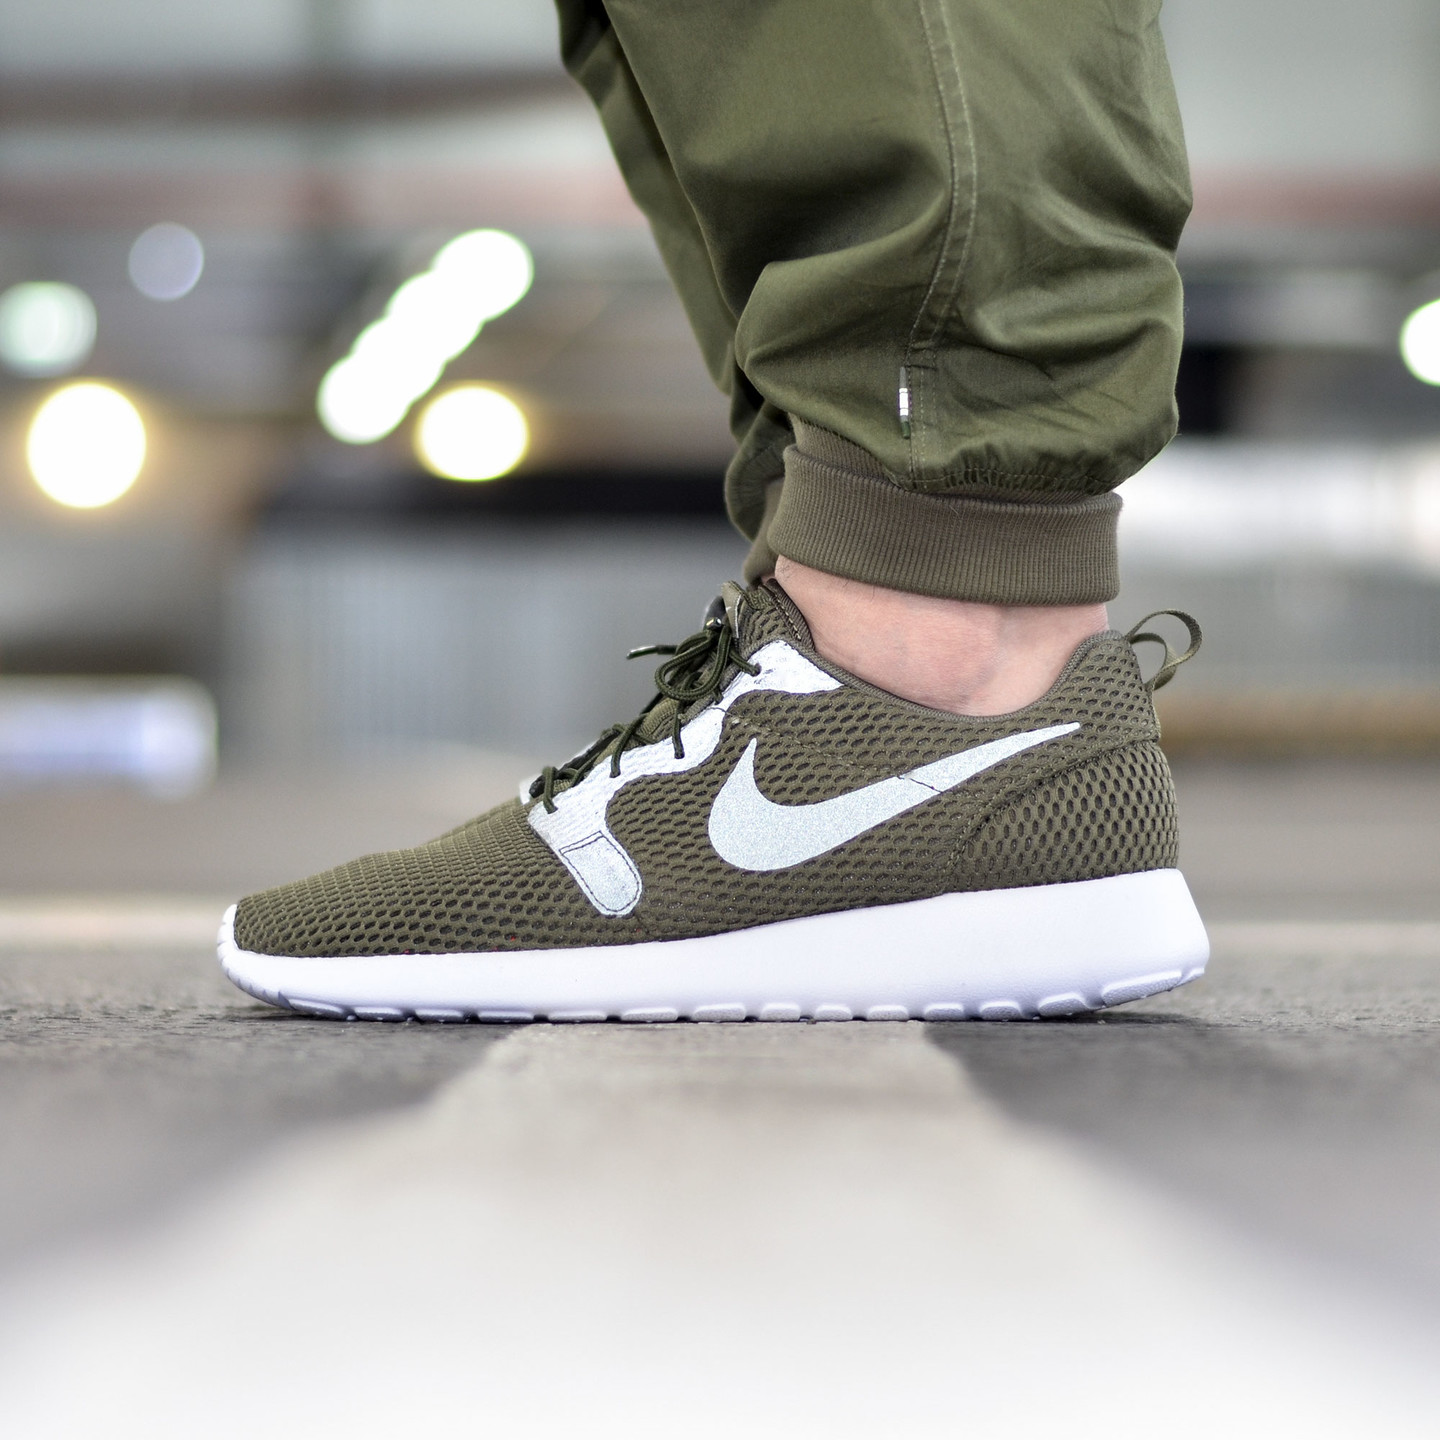 Nike Roshe One Hyperfuse BR Medium Olive / White 833125-200-42